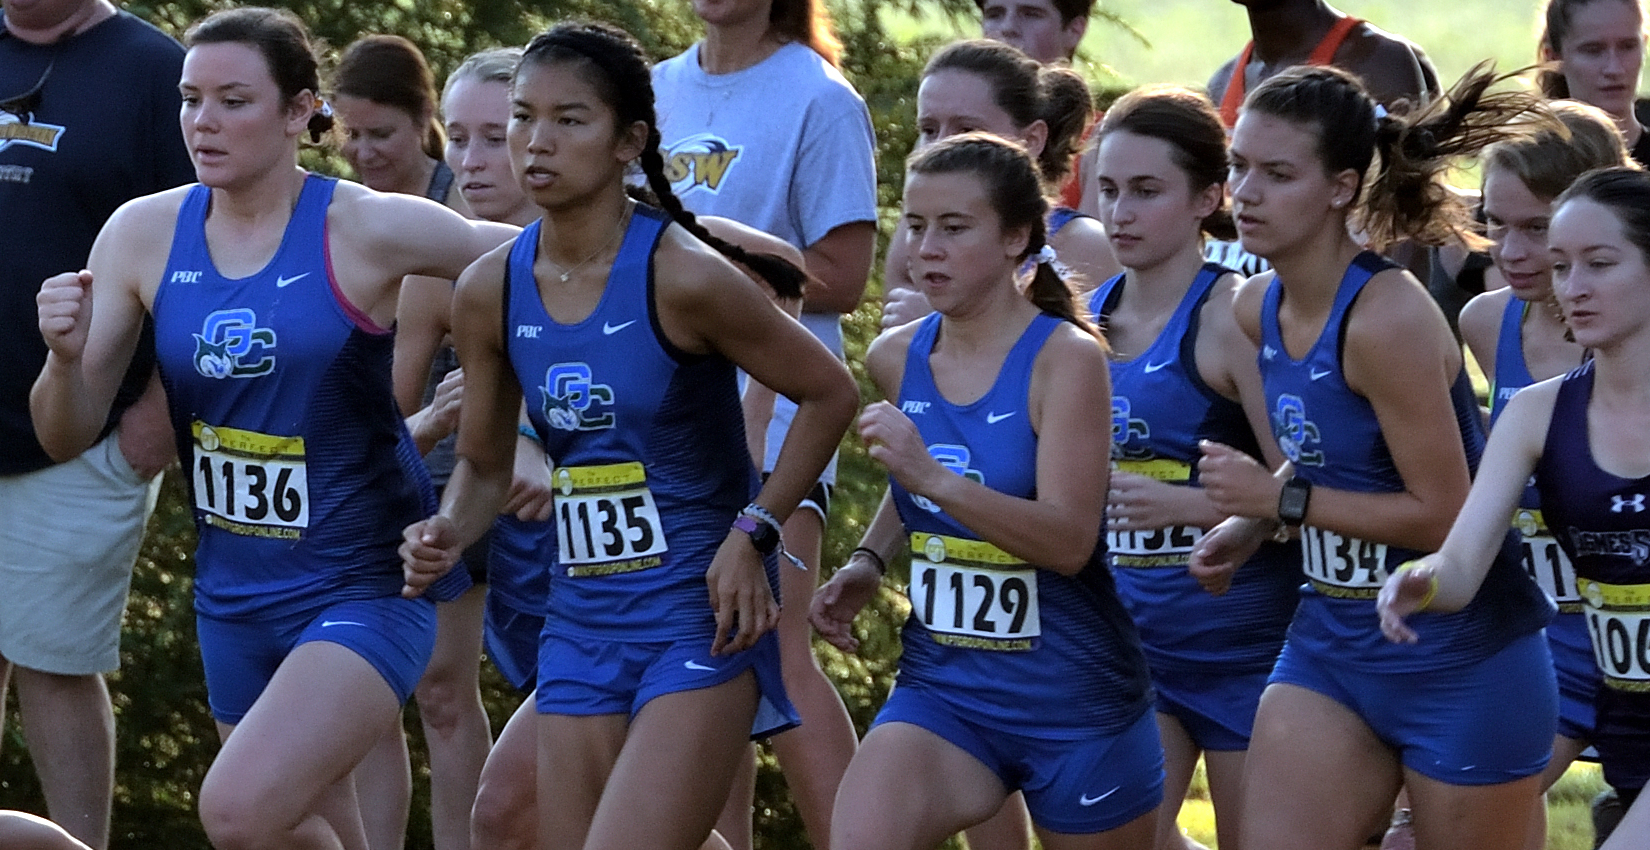 Bobcat Women's Cross Country led the way with a 3.80 team GPA